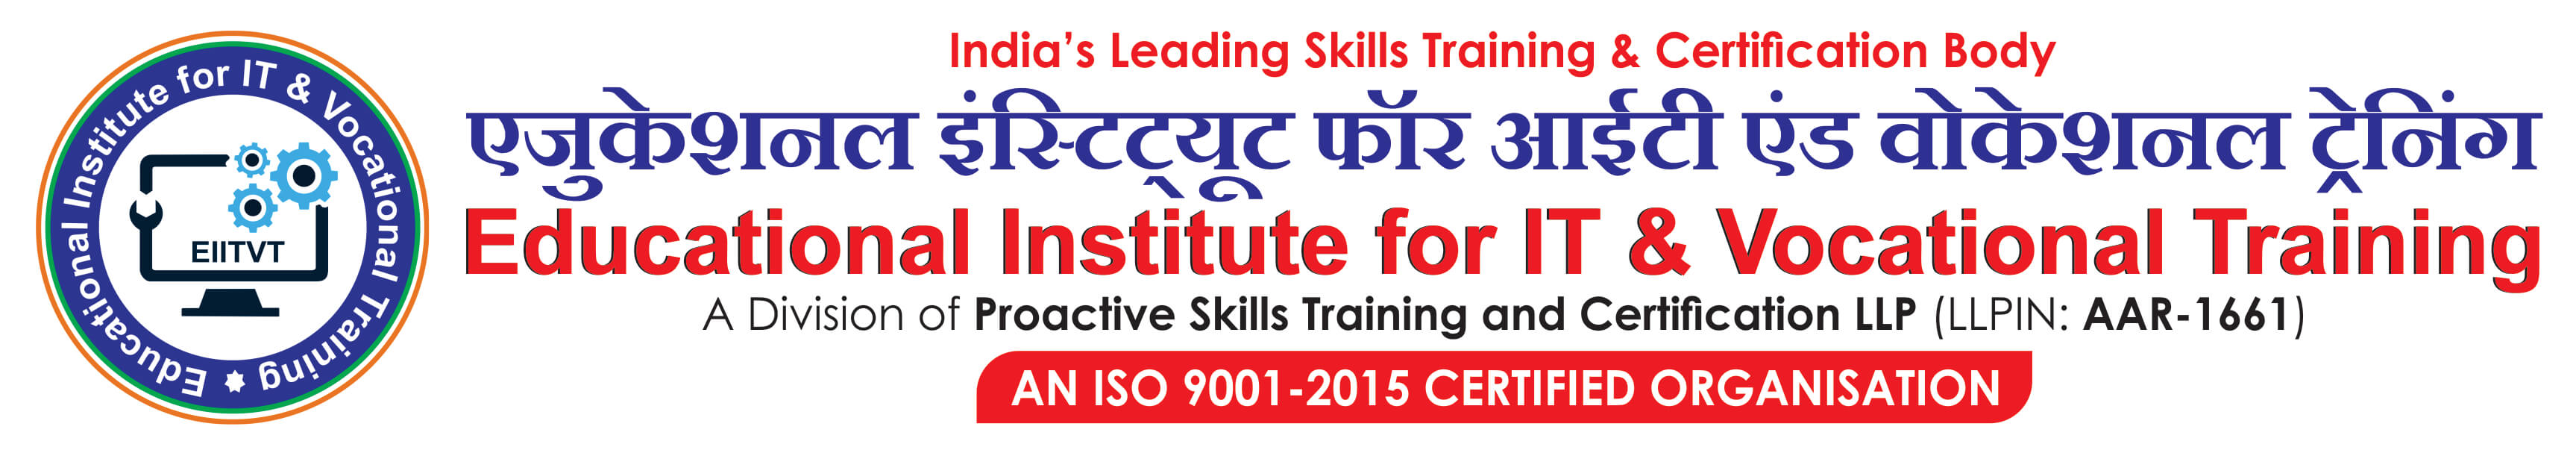 Educational Institute for IT & Vocational Training